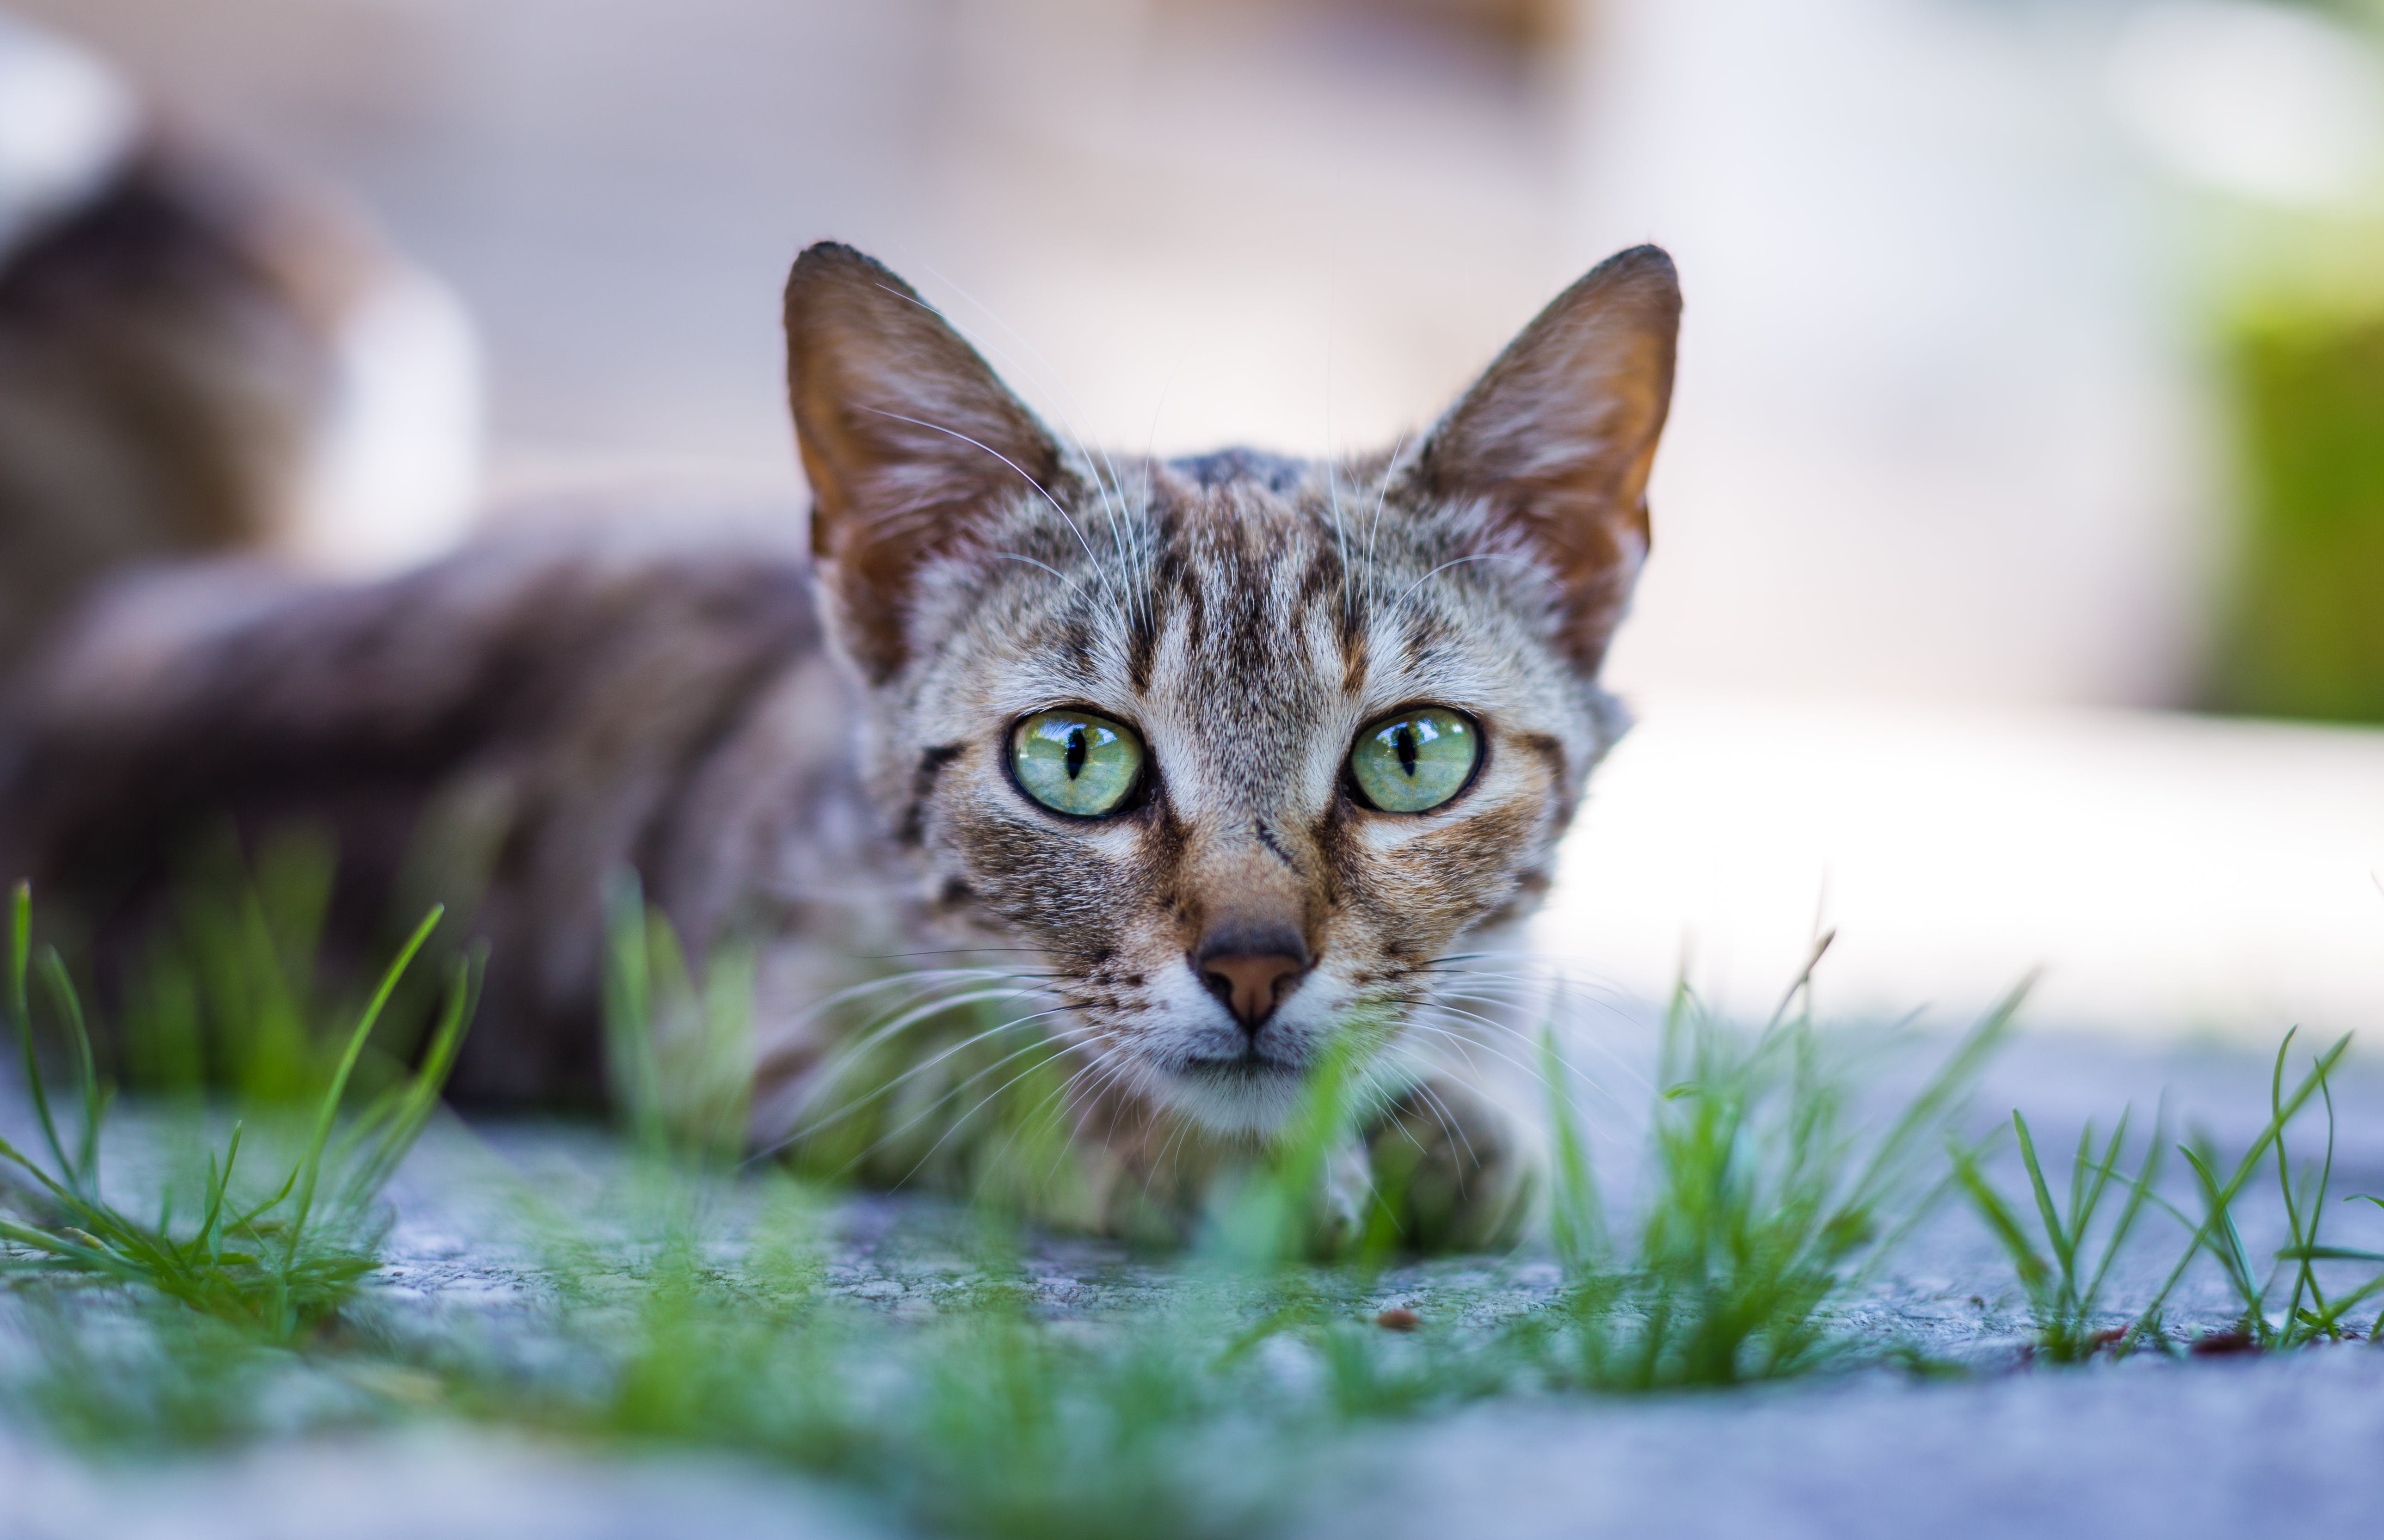 Free stock photo of animal, pet, eyes, grass